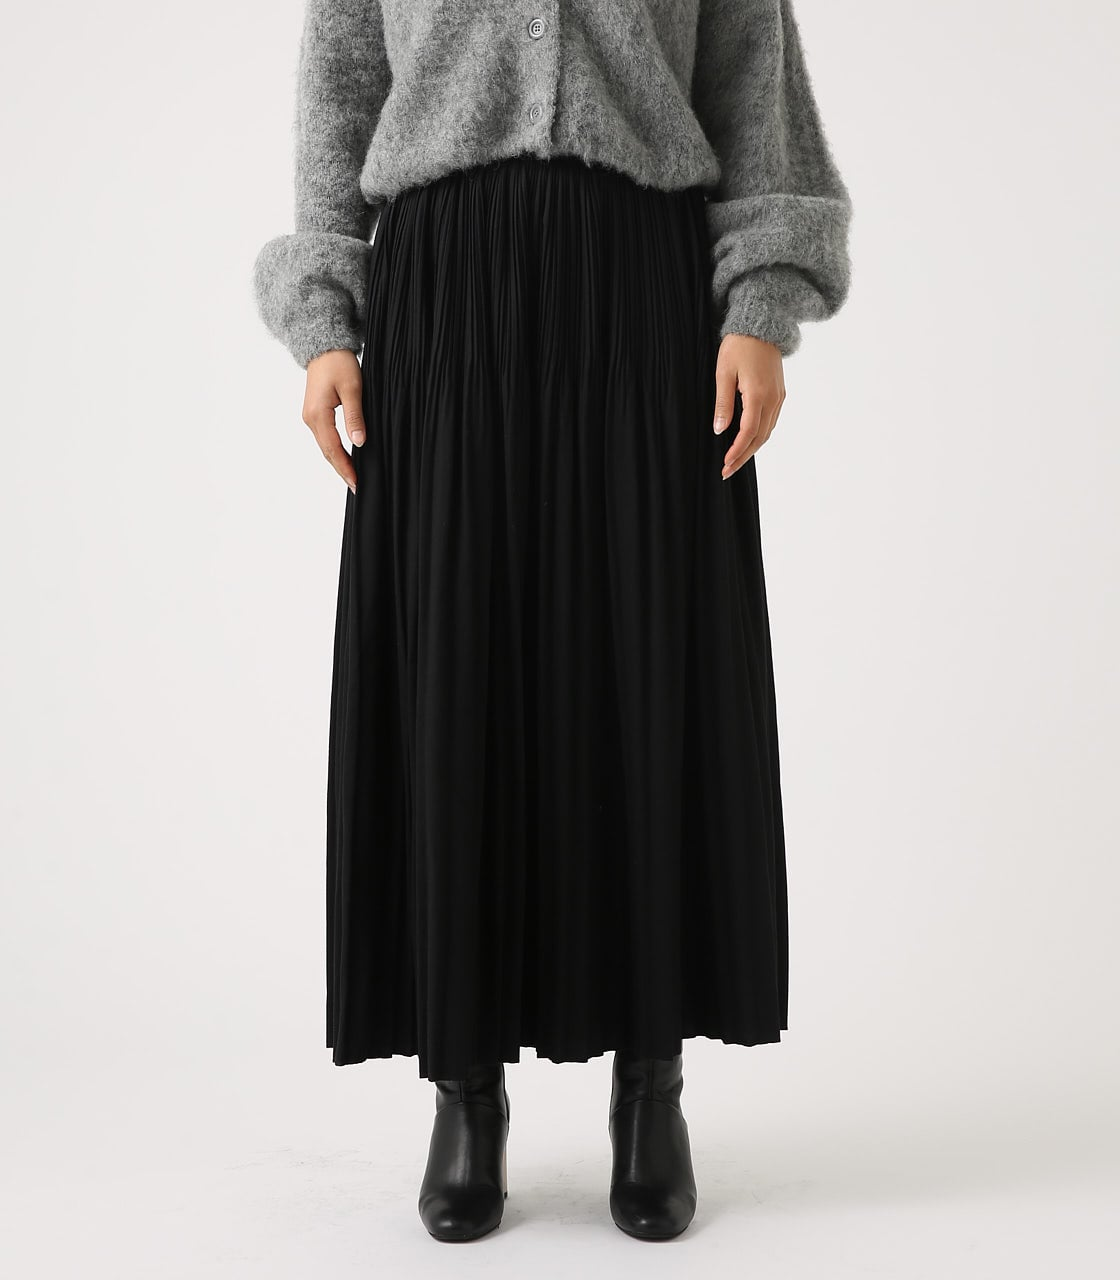 【AZUL BY MOUSSY】ベーシックプリーツスカート 詳細画像 BLK 5